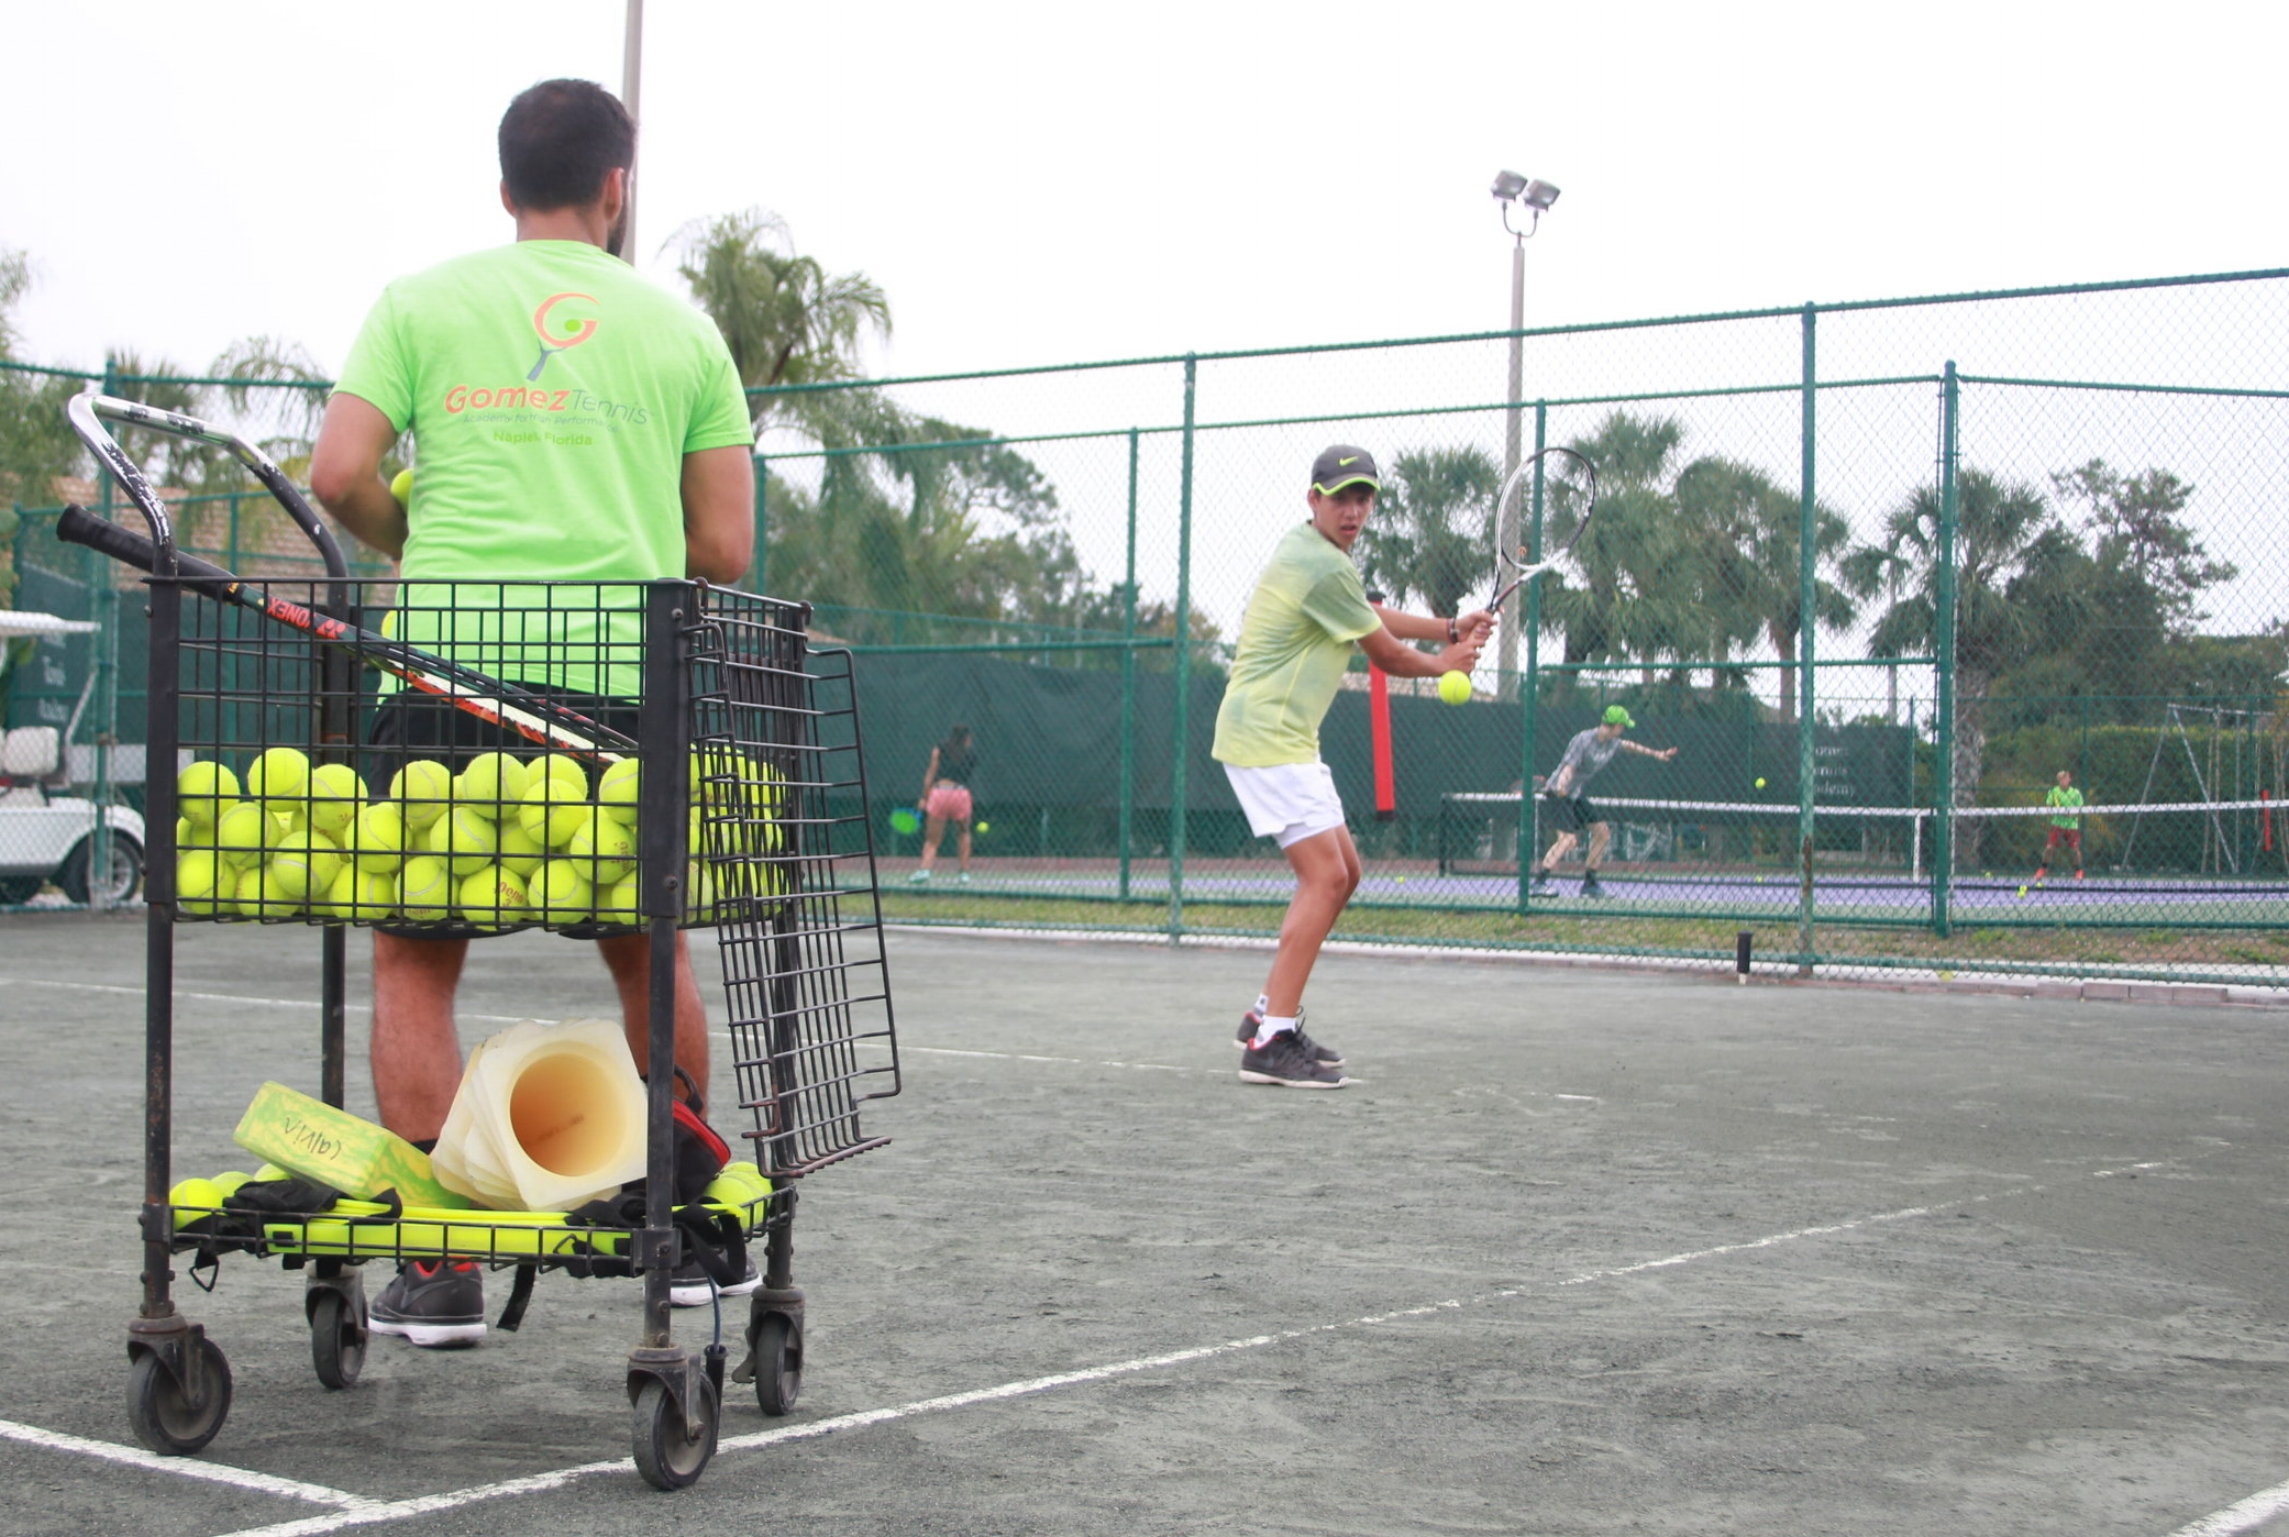 4:1 player to coach ratio - Our exceptional coaching staff works individually and in groups with no more than a 4:1 player to coach ratio, utilizing live ball practice, match play and drills, in addition to mental training and fitness.